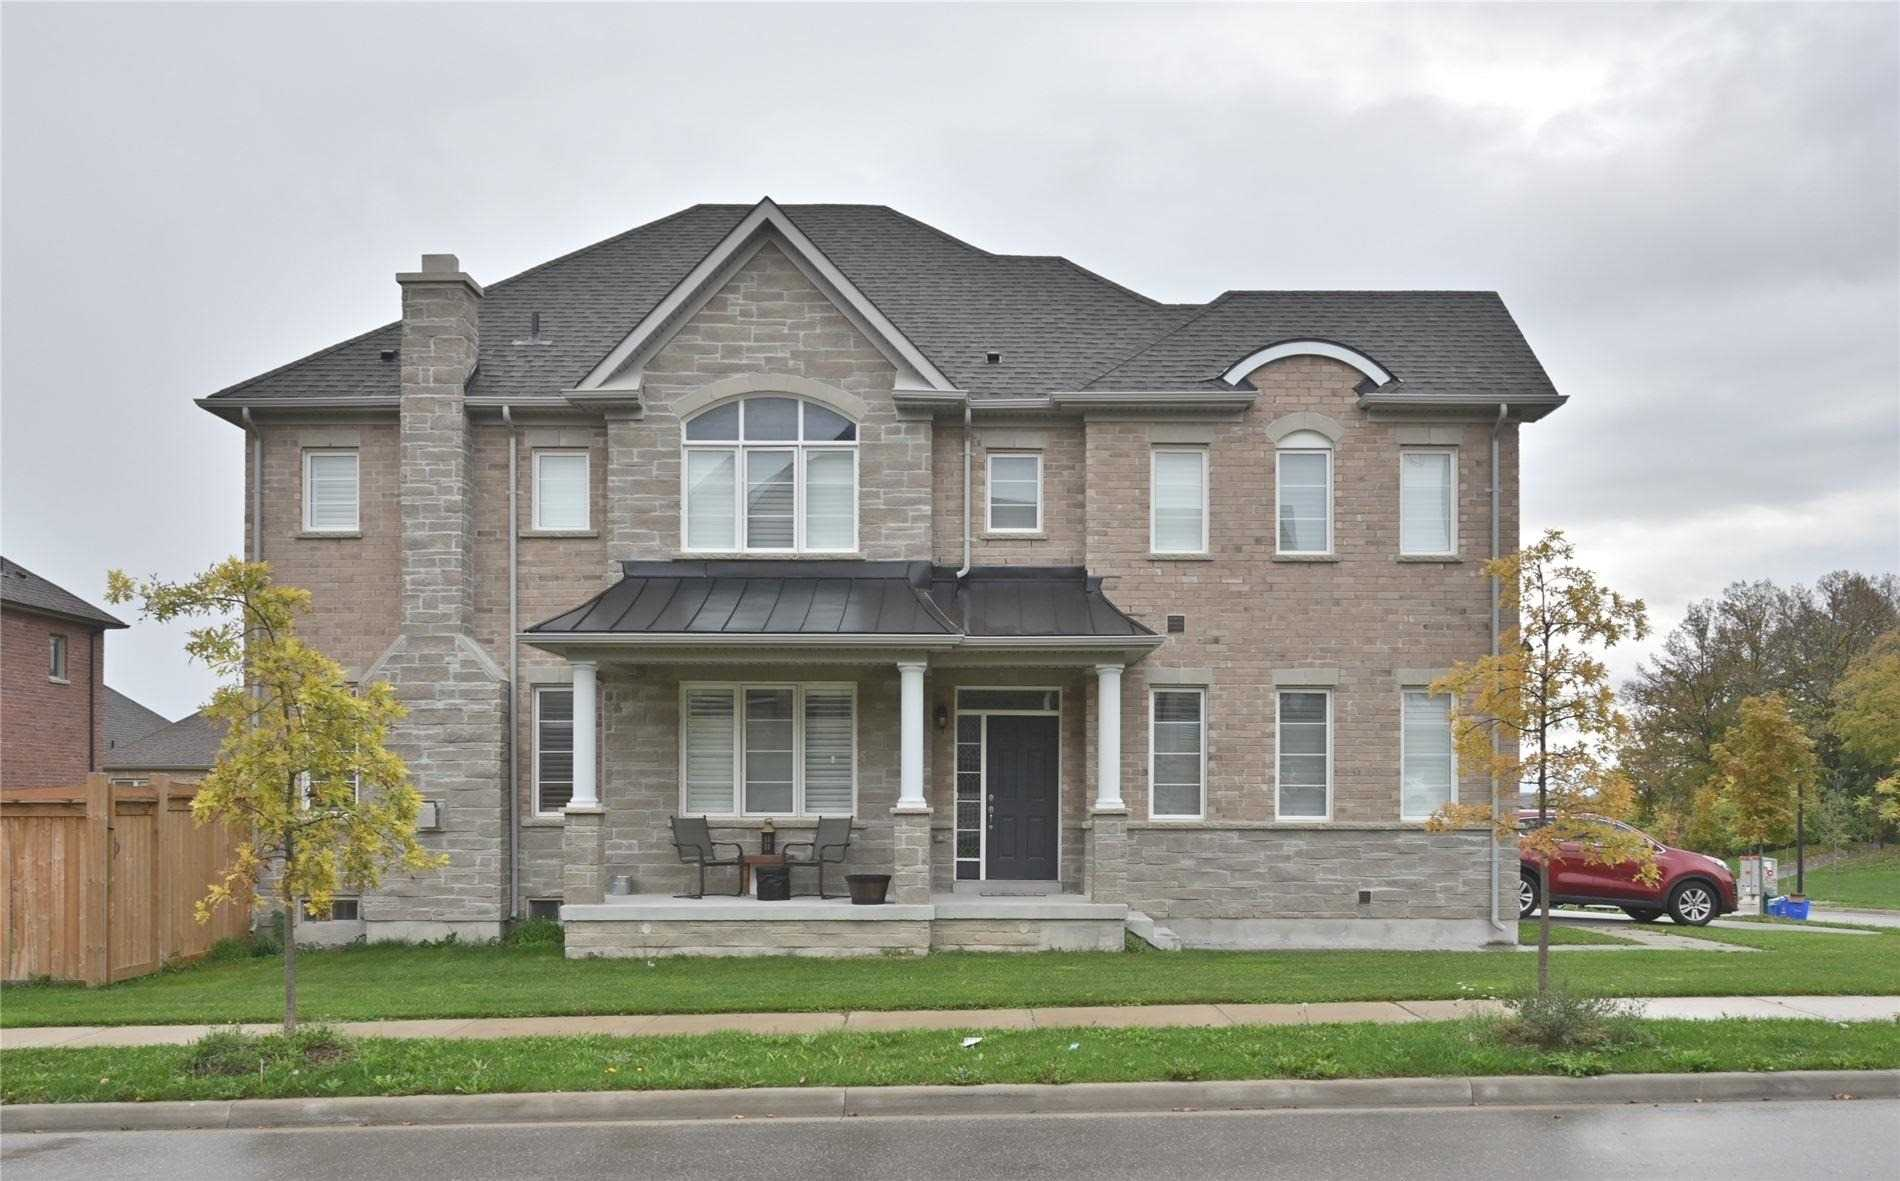 Detached house For Lease In East Gwillimbury - 37 Walter Tunny Cres, East Gwillimbury, Ontario, Canada L9N 0R4 , 4 Bedrooms Bedrooms, ,4 BathroomsBathrooms,Detached,For Lease,Walter Tunny